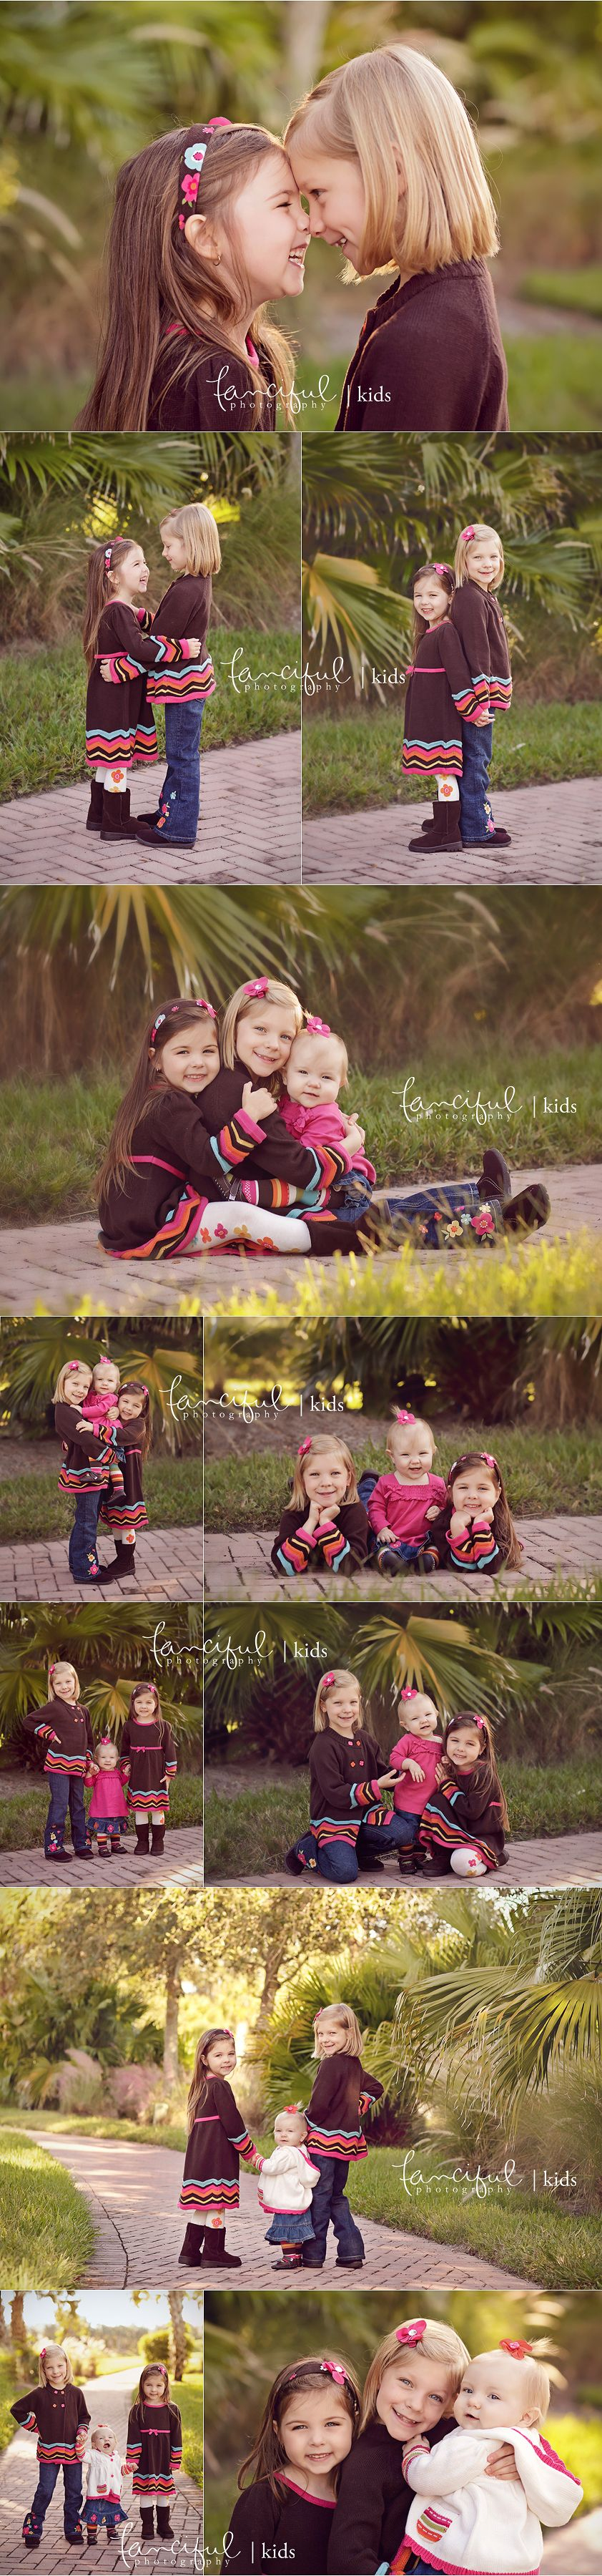 This makes me want to have more babies...Sarasota Child Photographer ...